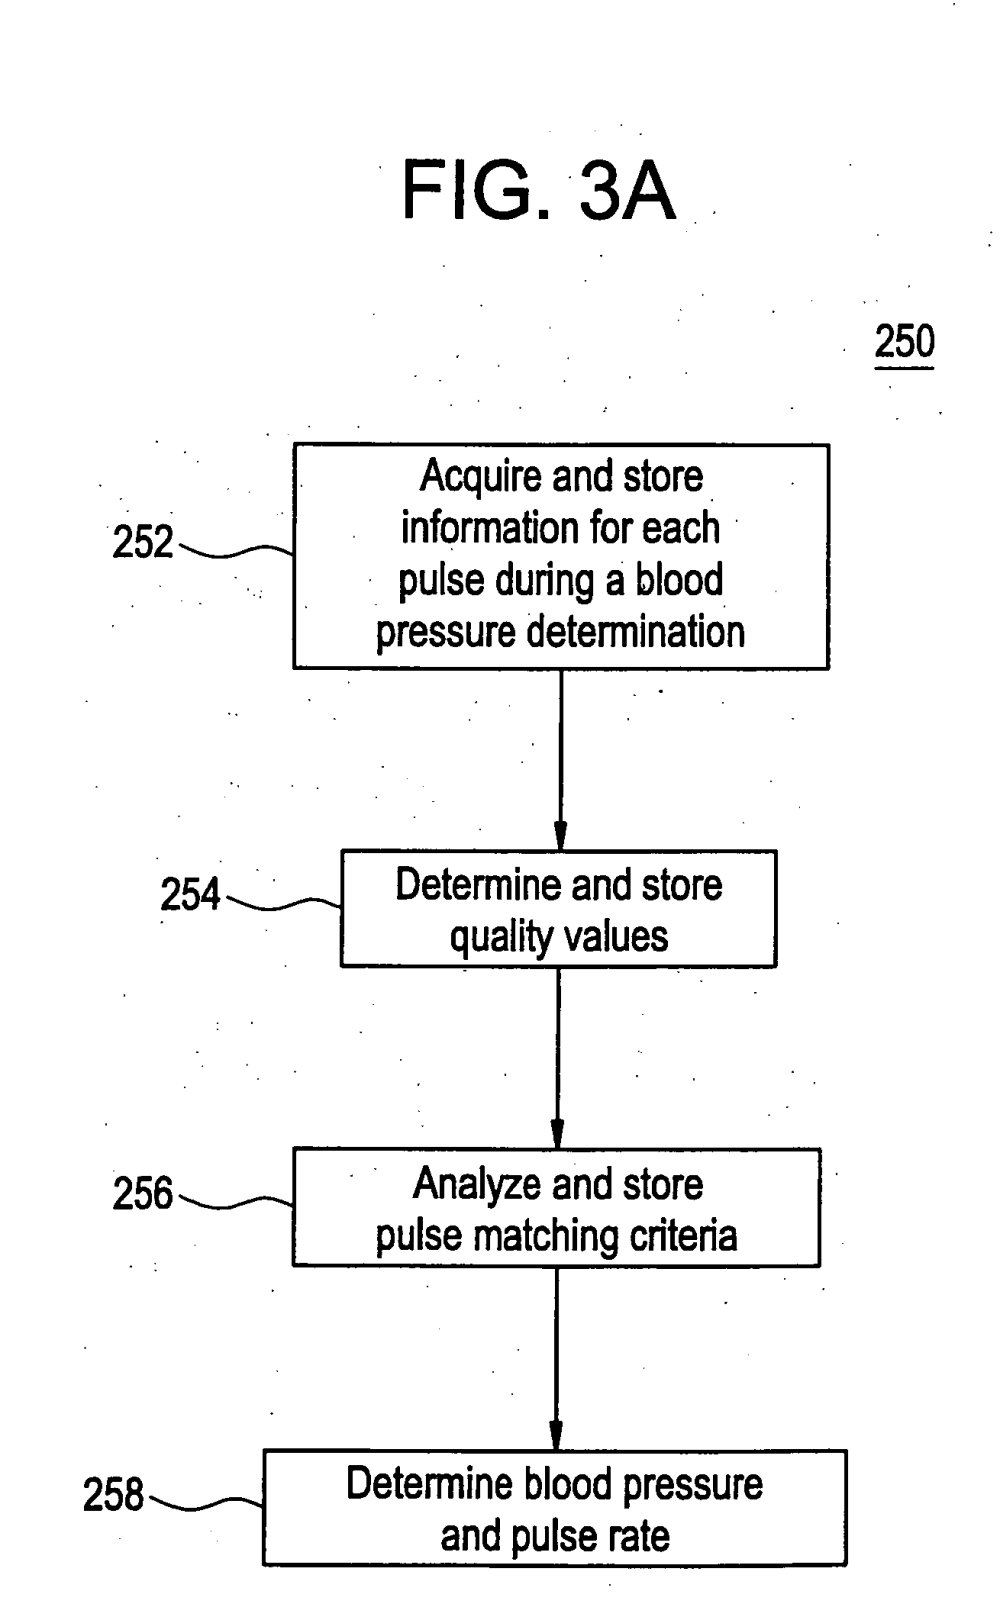 medium resolution of us20060184055a1 method and system for determination of pulse rate google patents